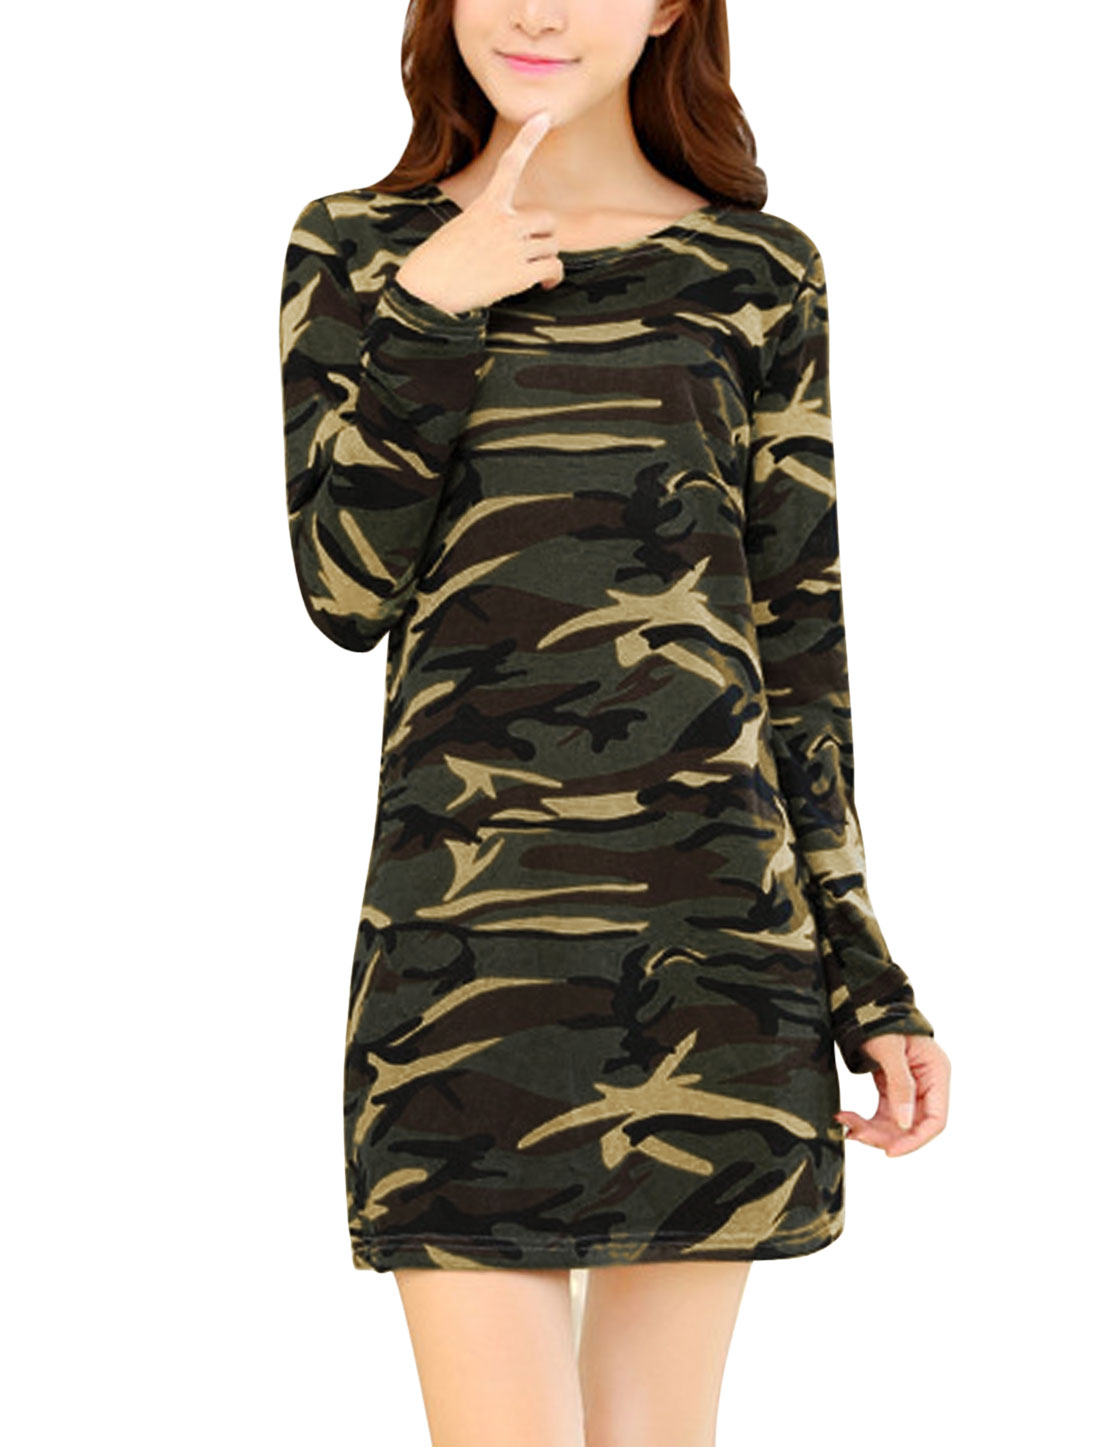 Women Army Green Round Neck Camouflage Pattern Knitting Shift Dress S